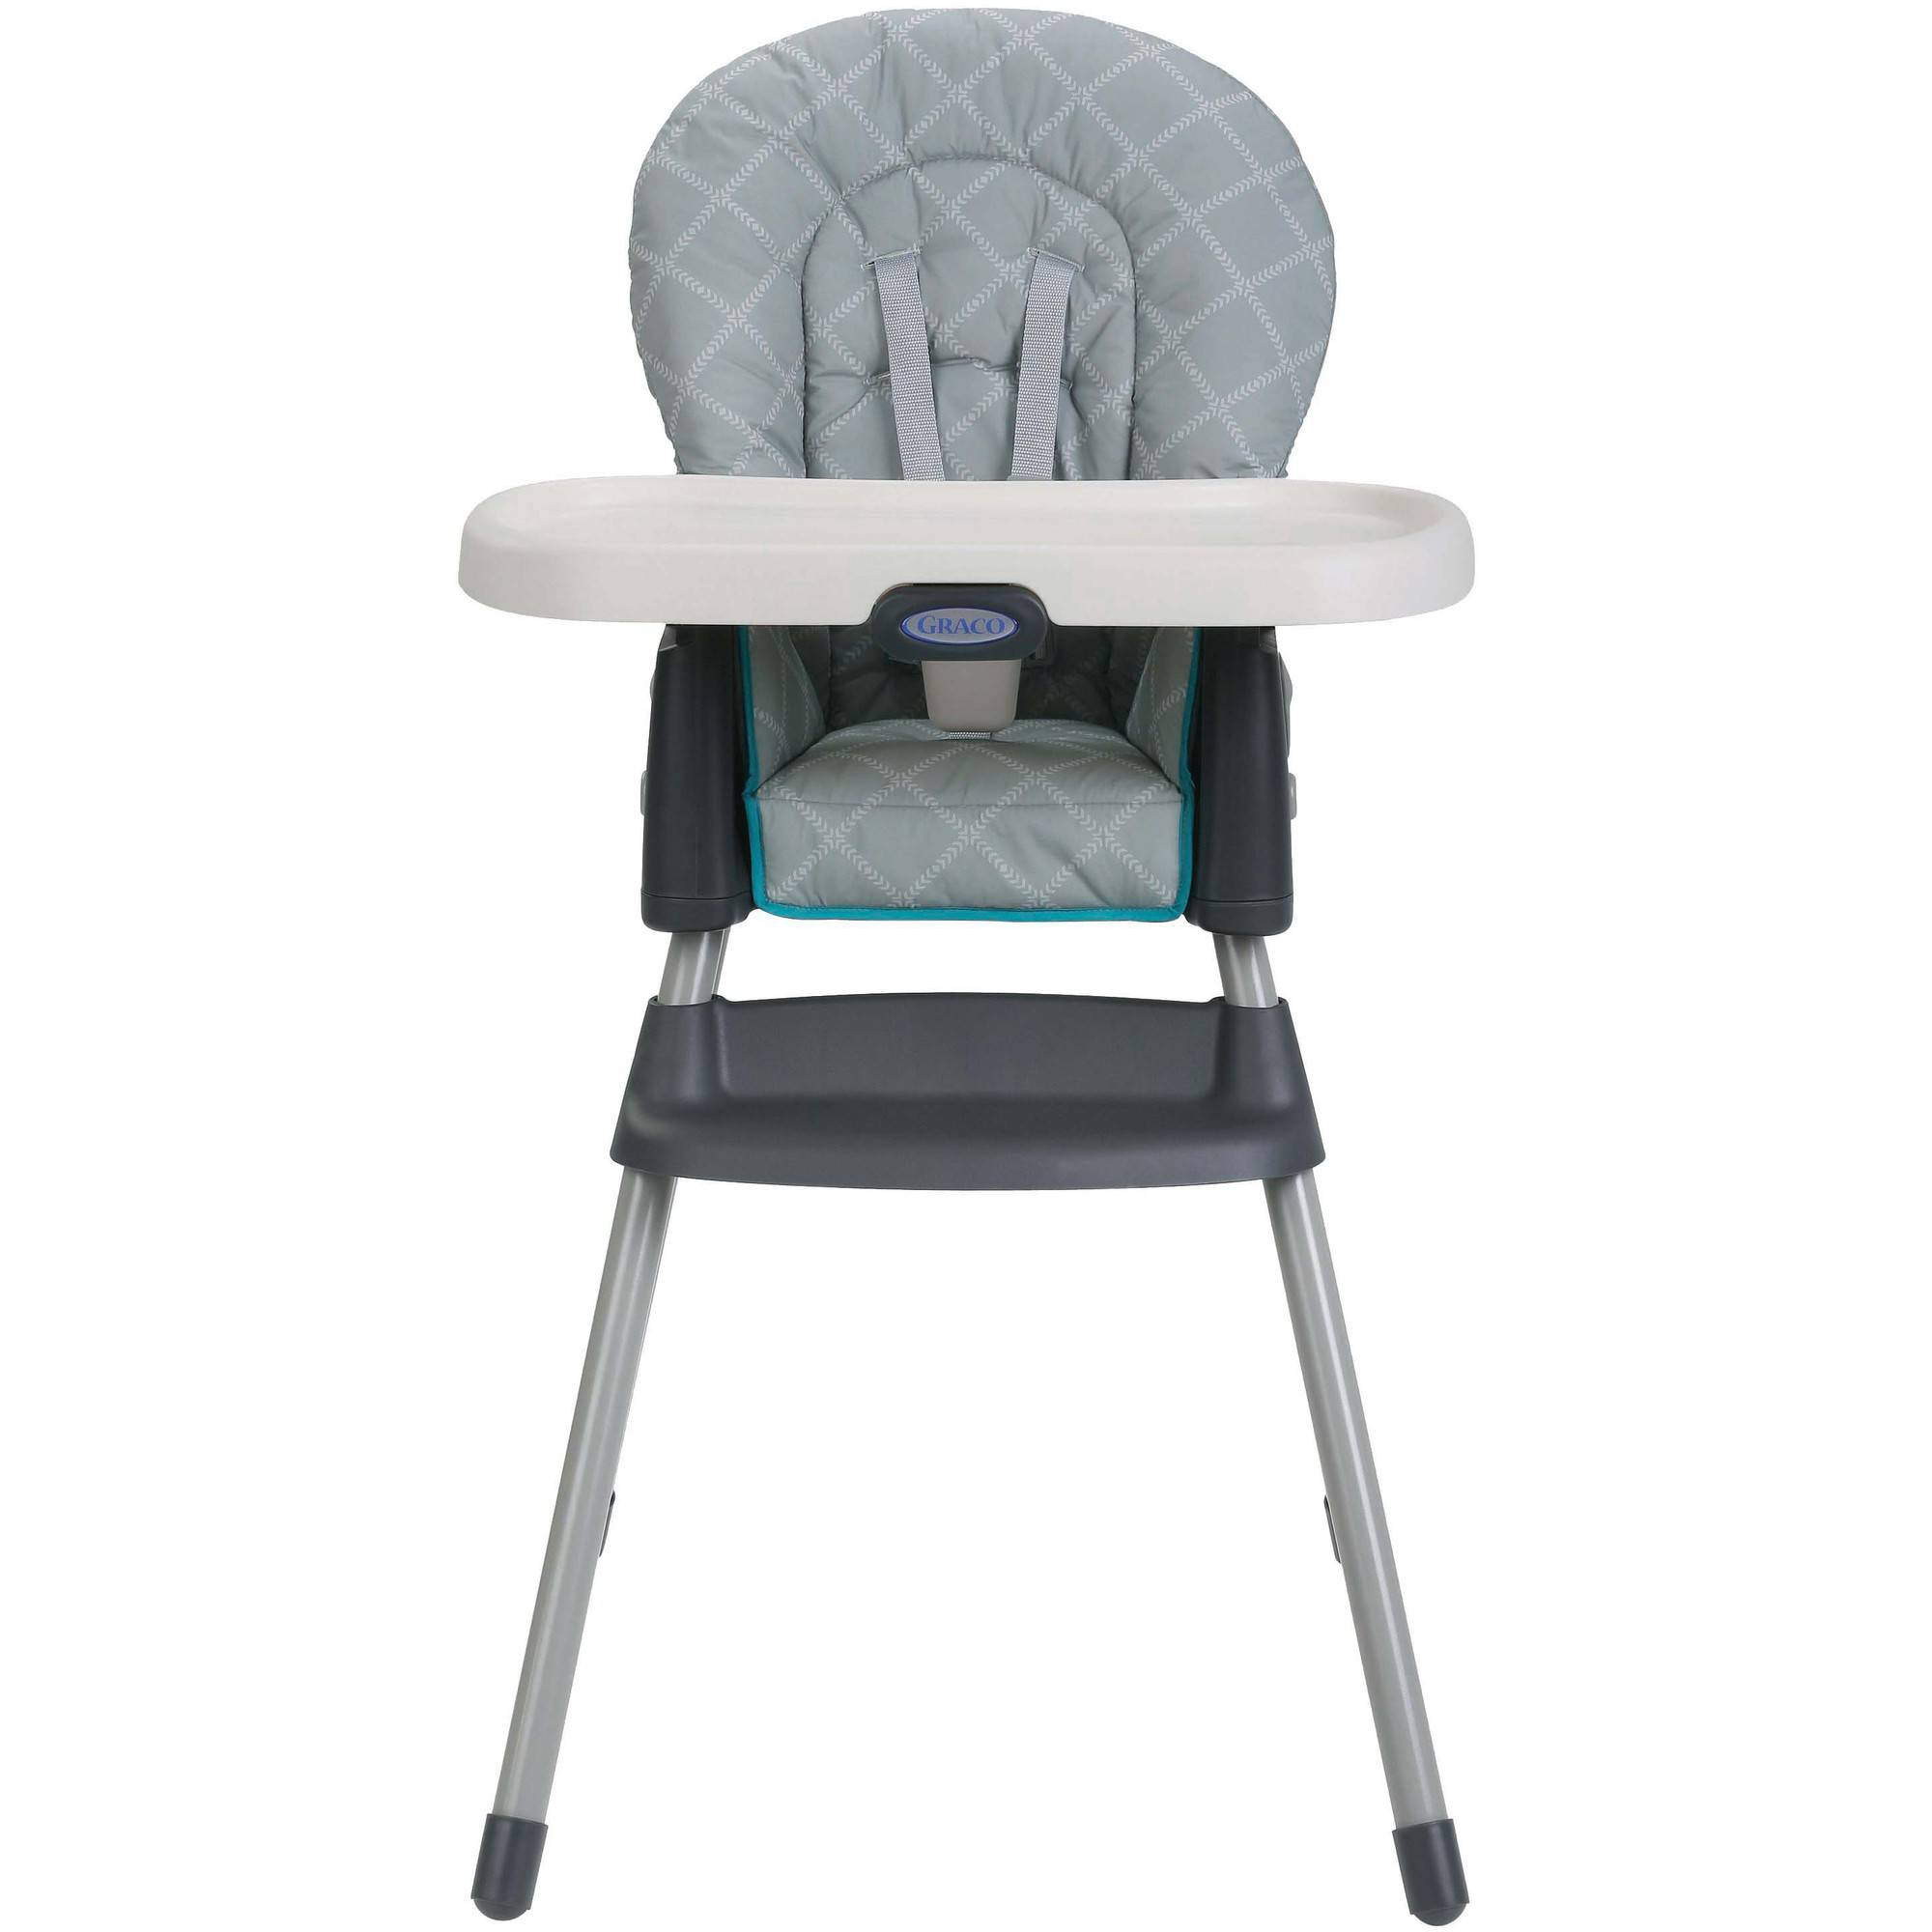 Graco SimpleSwitch Highchair   Finch   Walmart.com